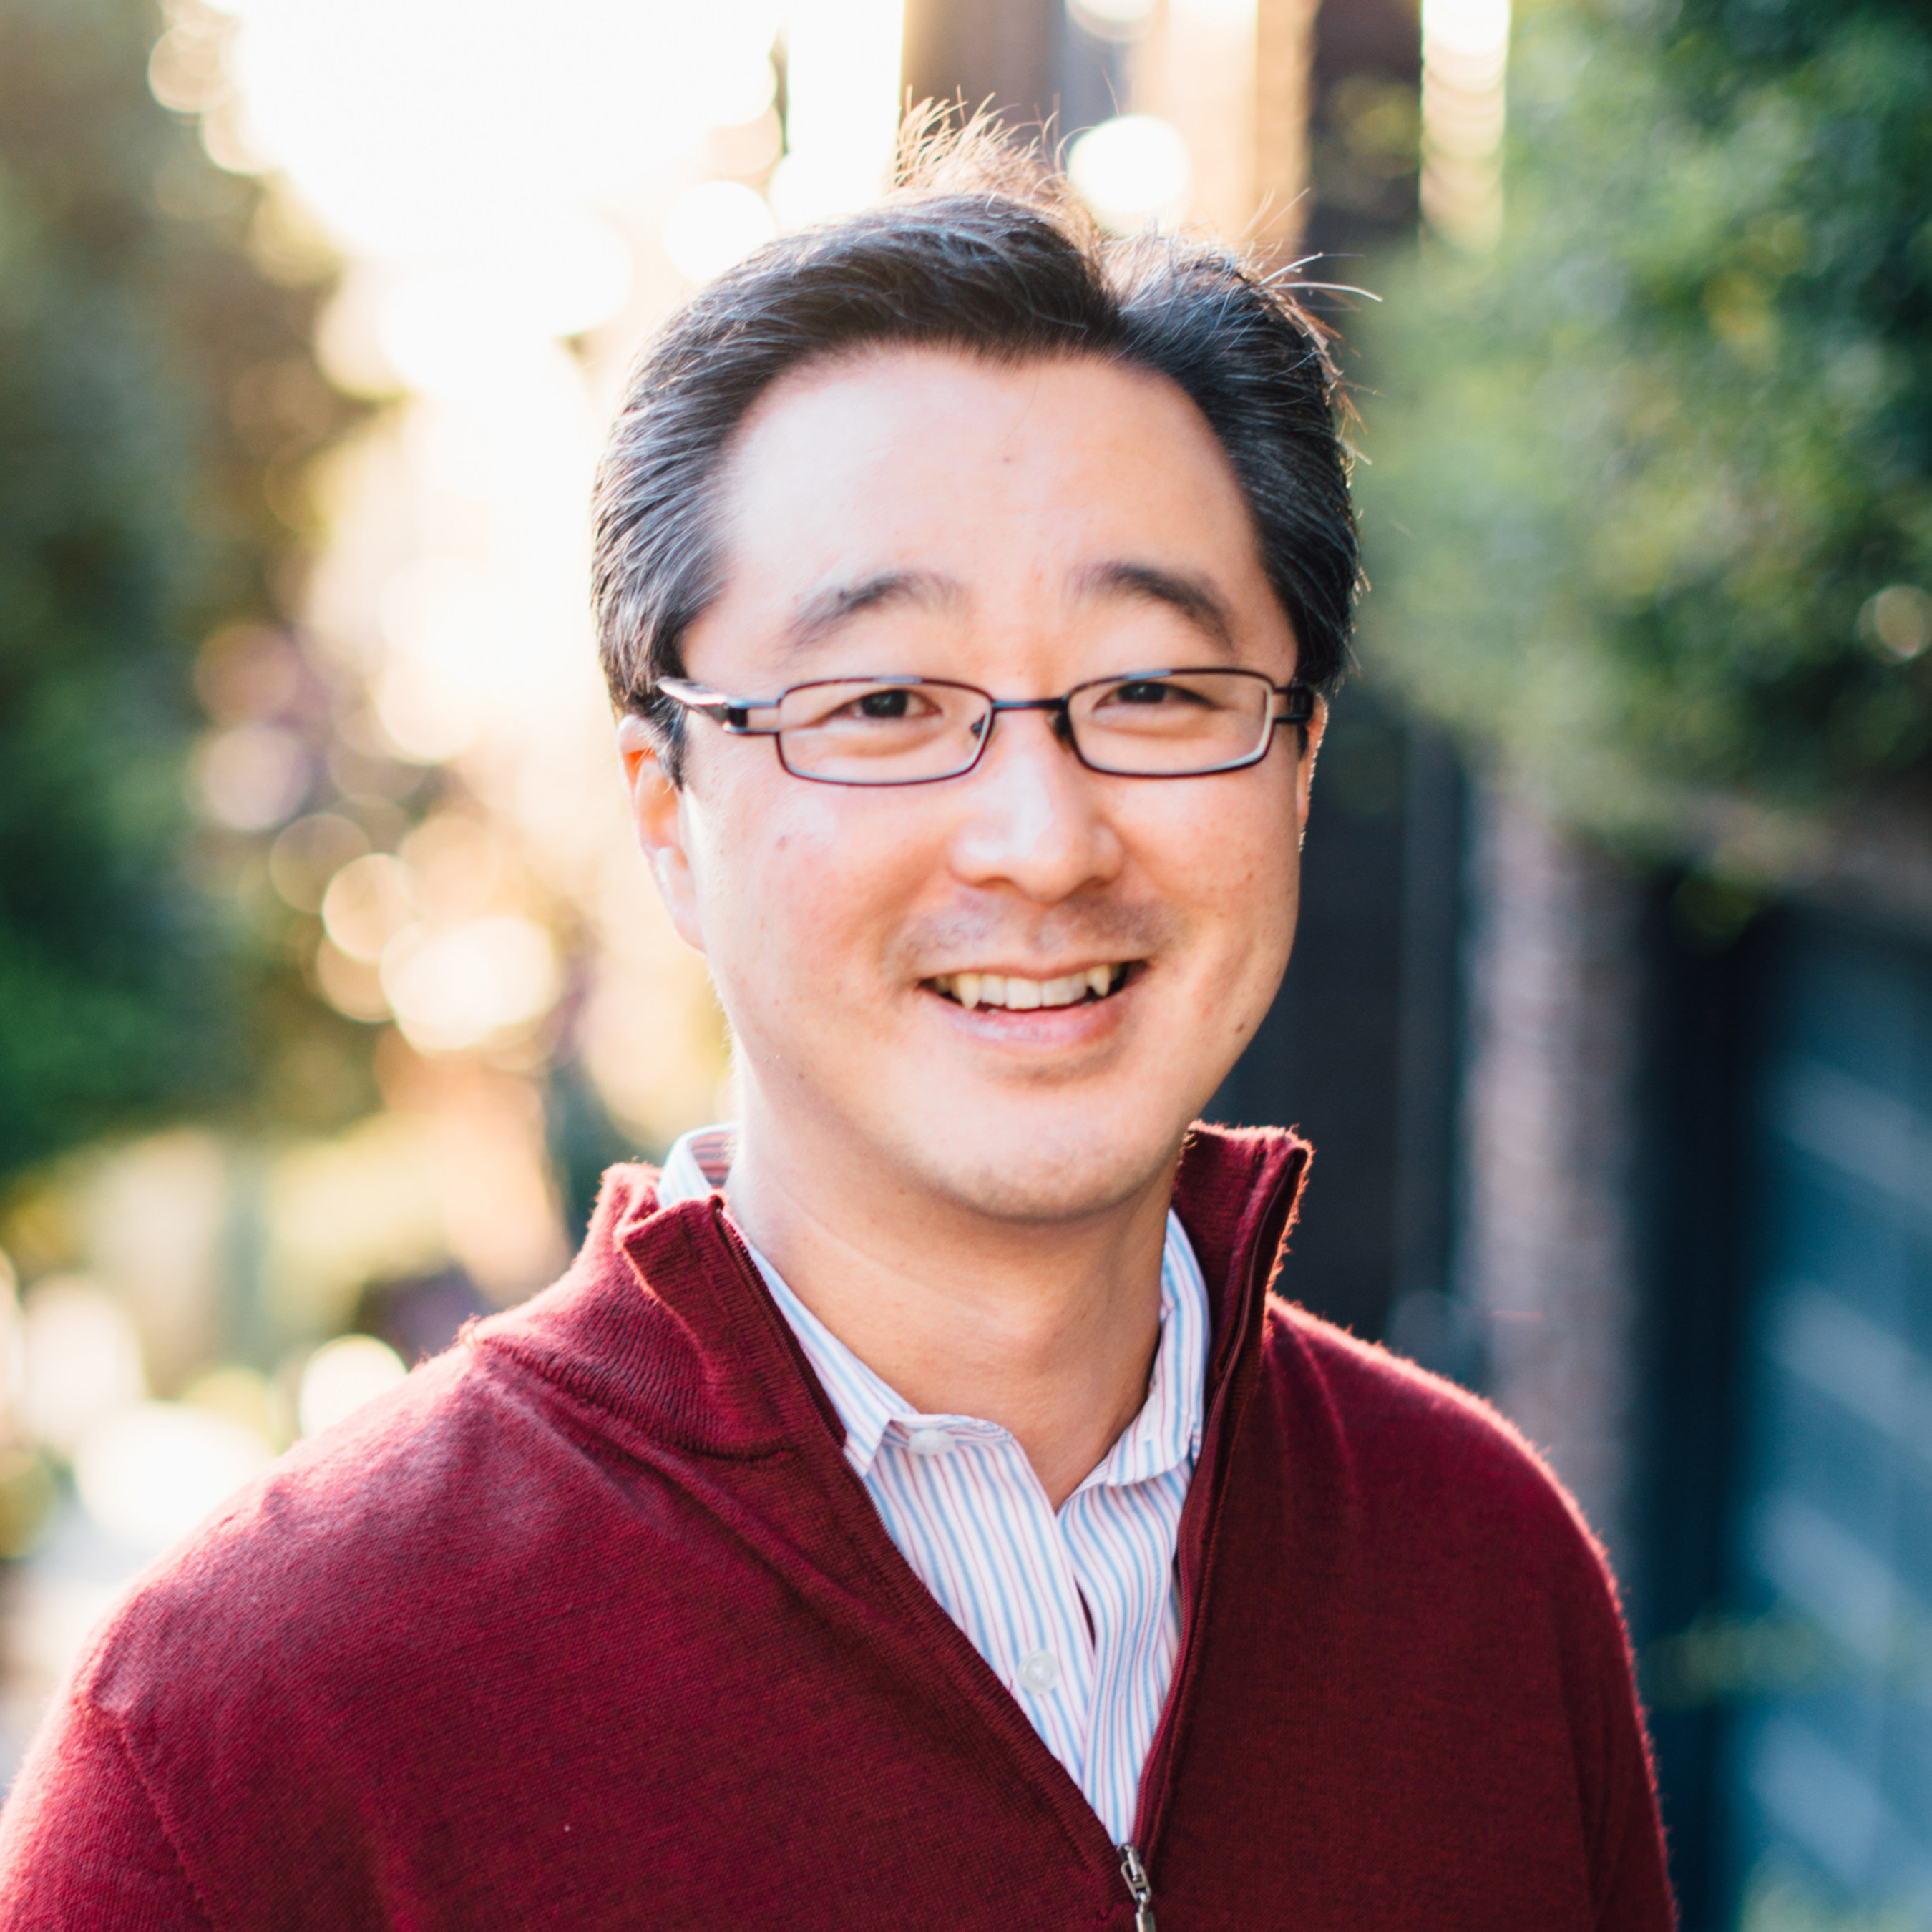 David Lee, Impossible Foods' new COO and CFO as of Dec. 14, 2015